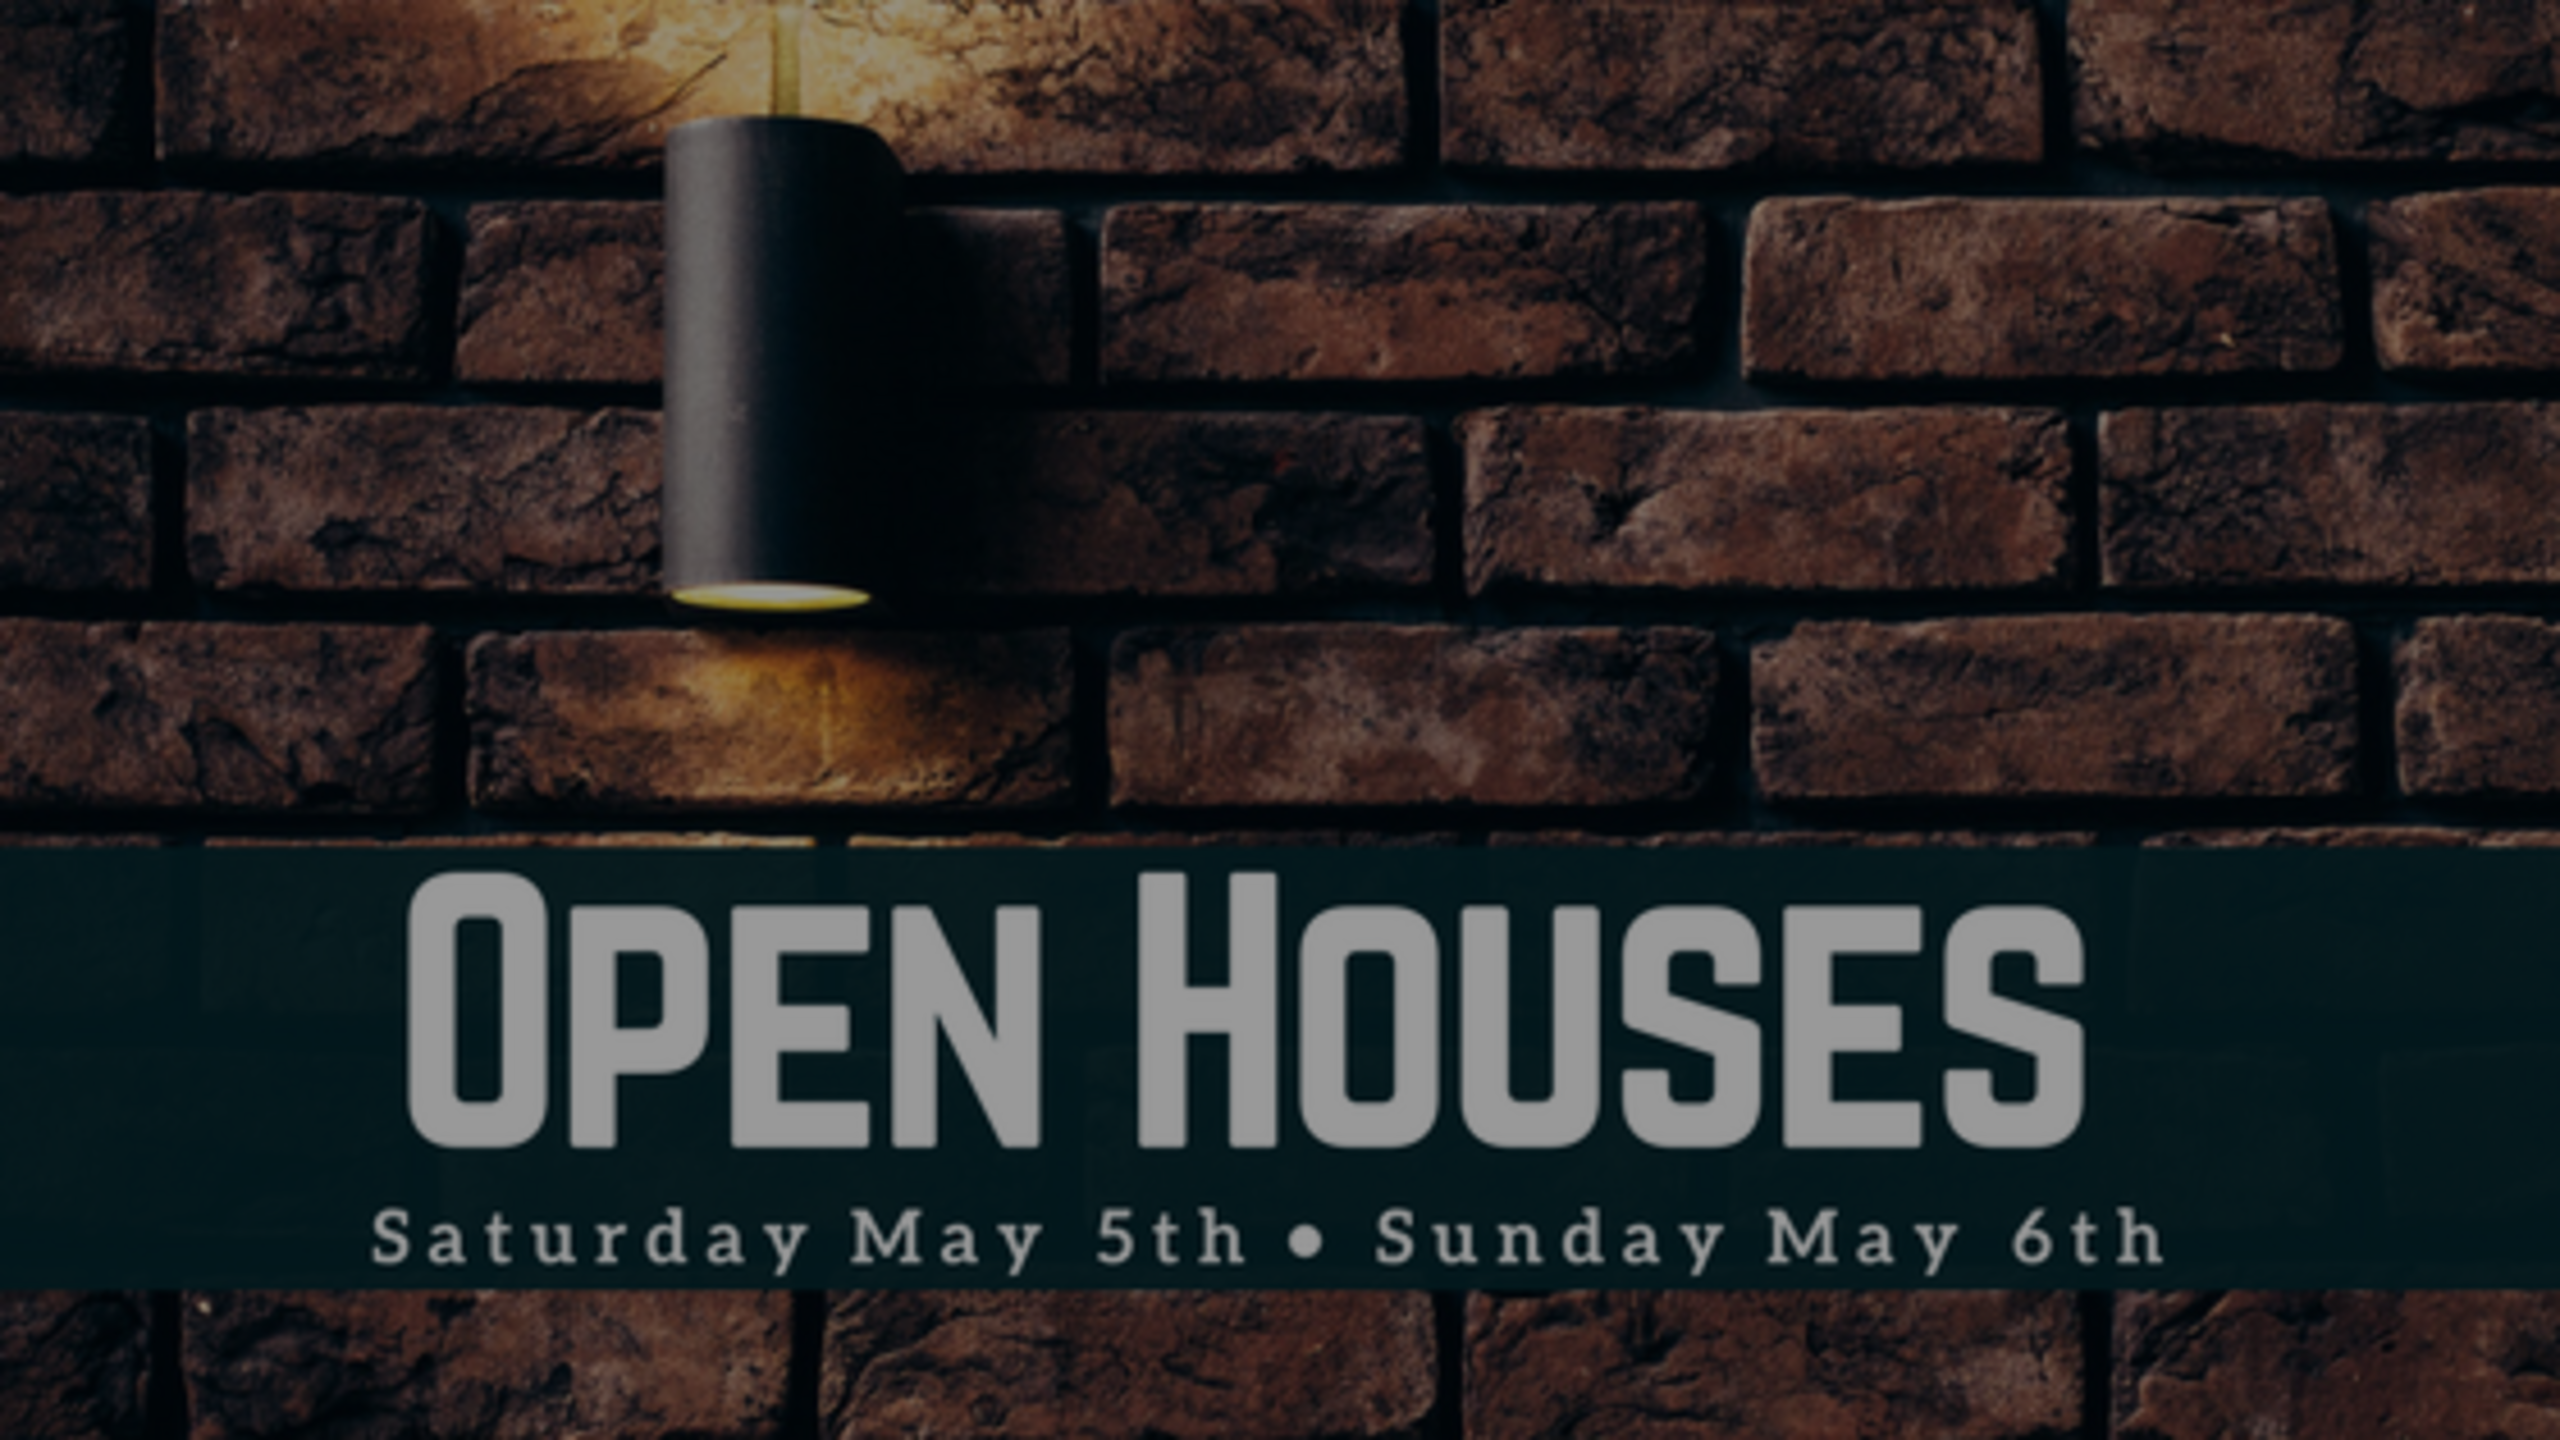 Our Open Houses: Weekend of 5/5 + 5/6